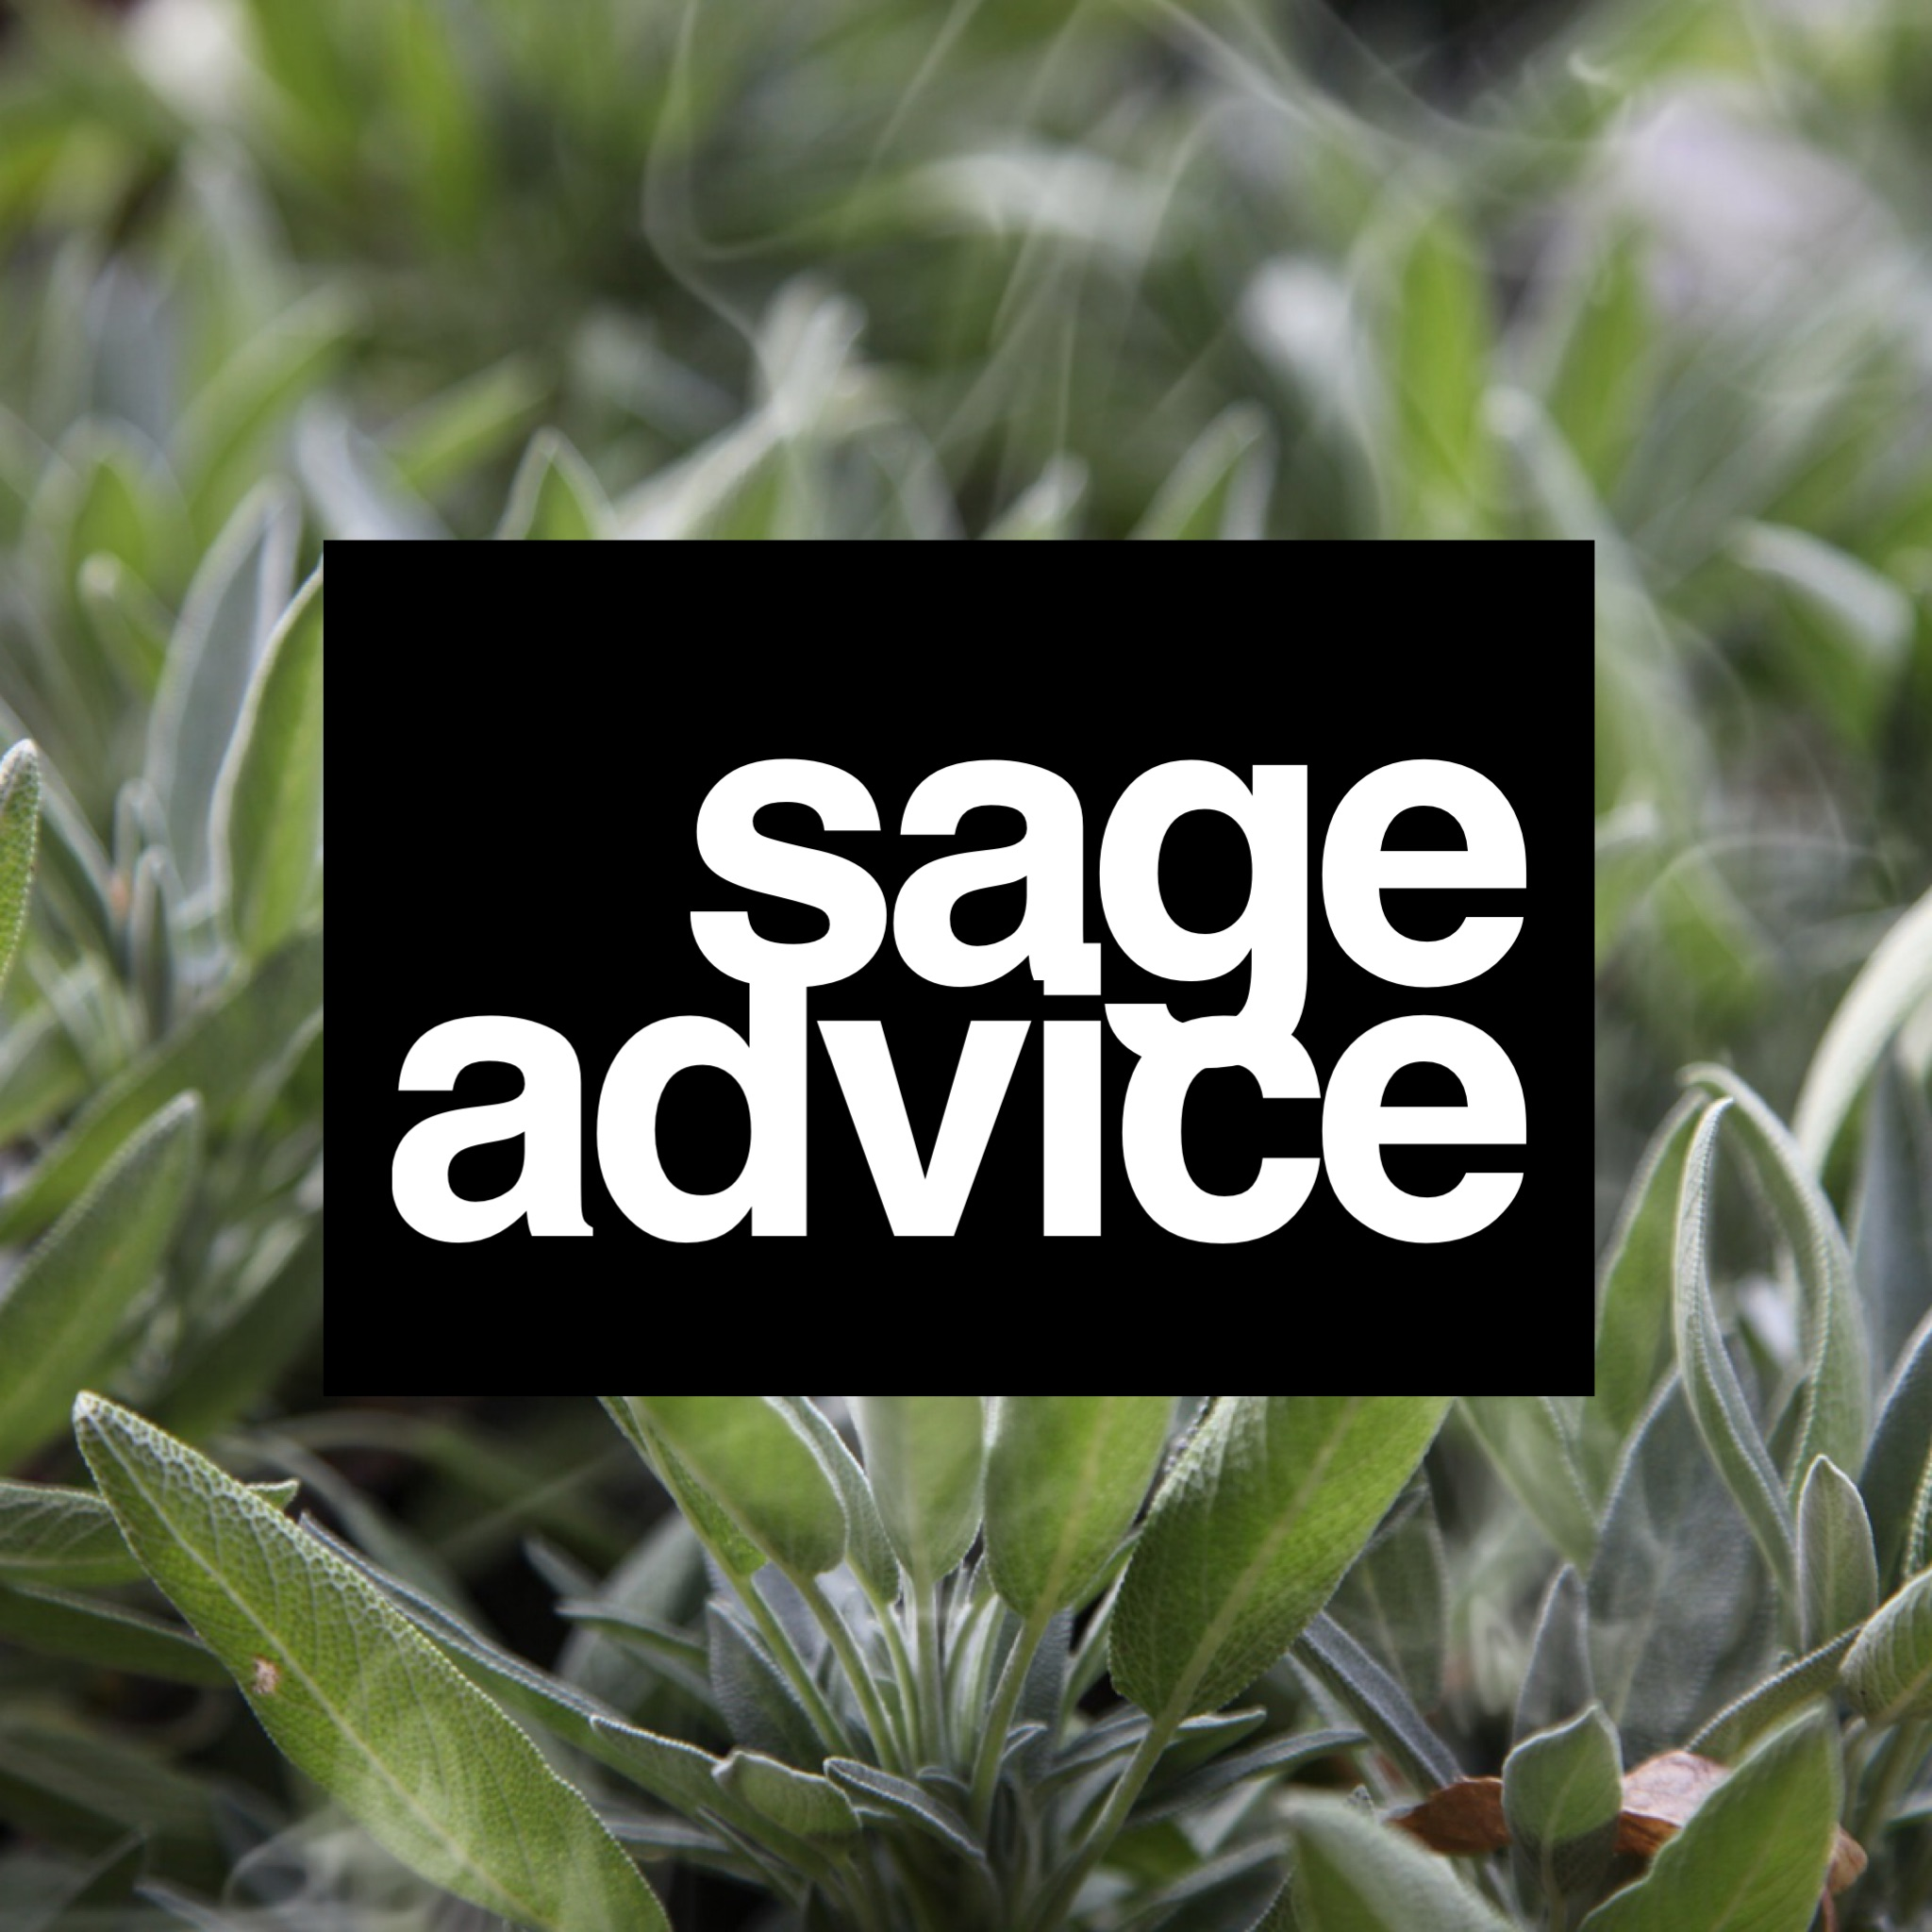 sage-advice-marble-falls-massage-beauty-spa-wisdom-herb